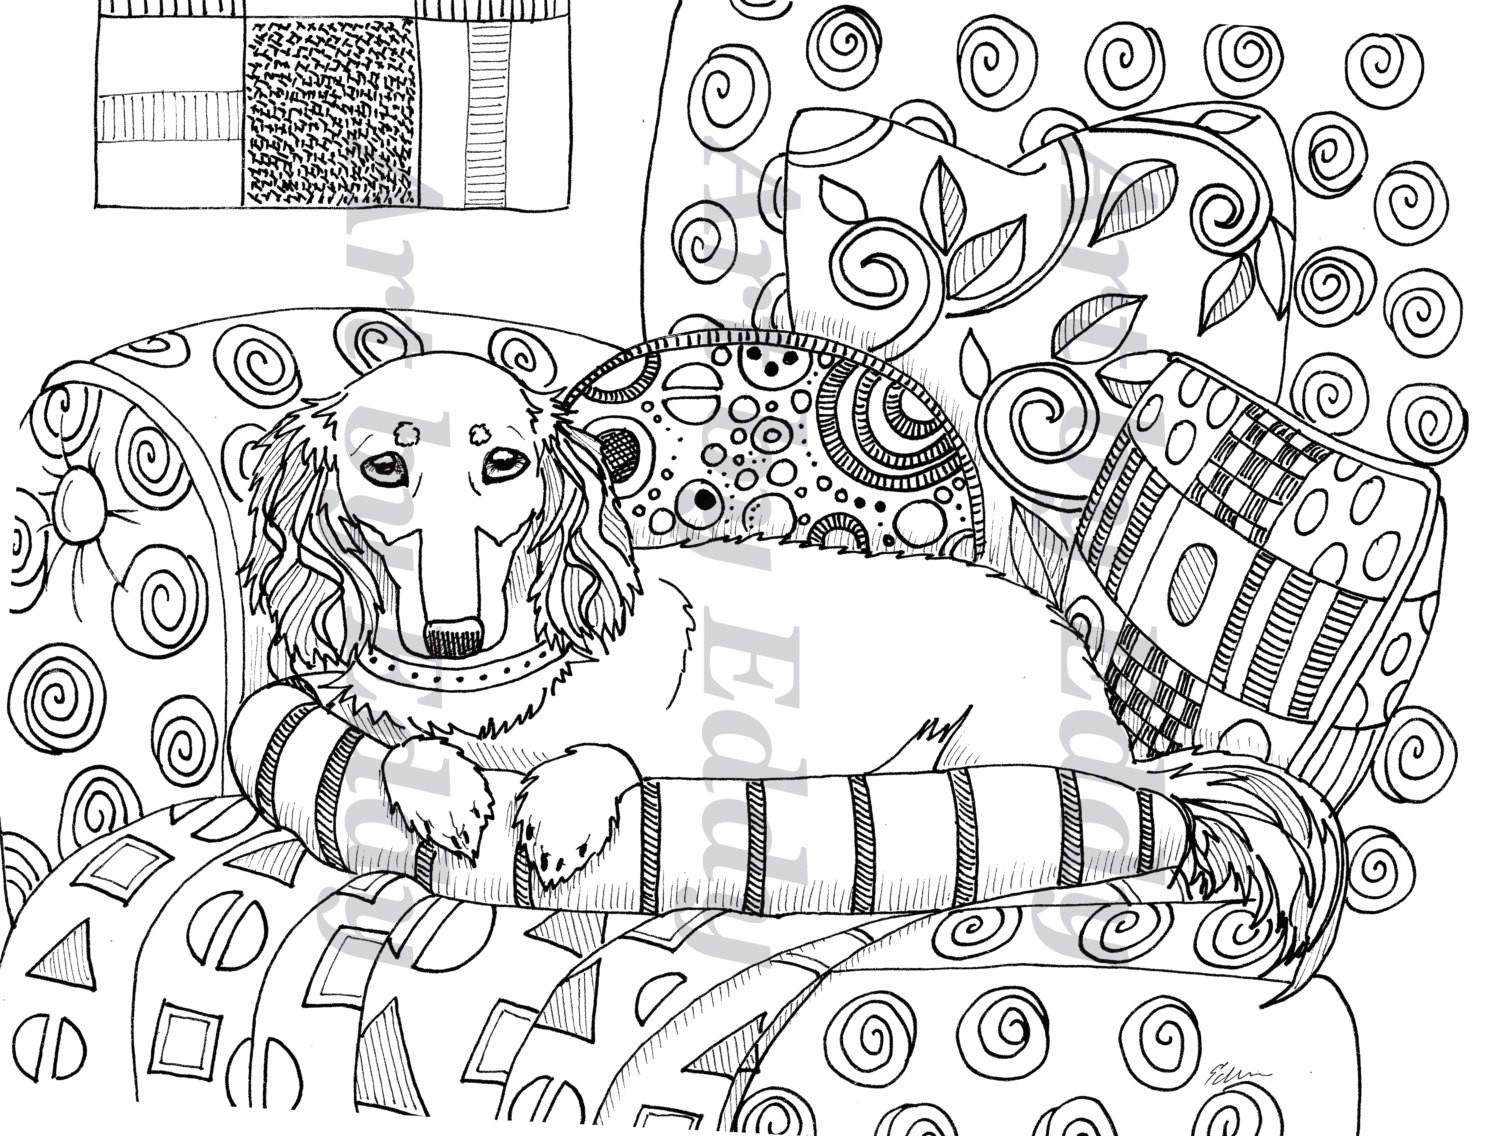 Daschund Coloring Book  Art of Dachshund Single Coloring Page Klimt Inspired Doxie